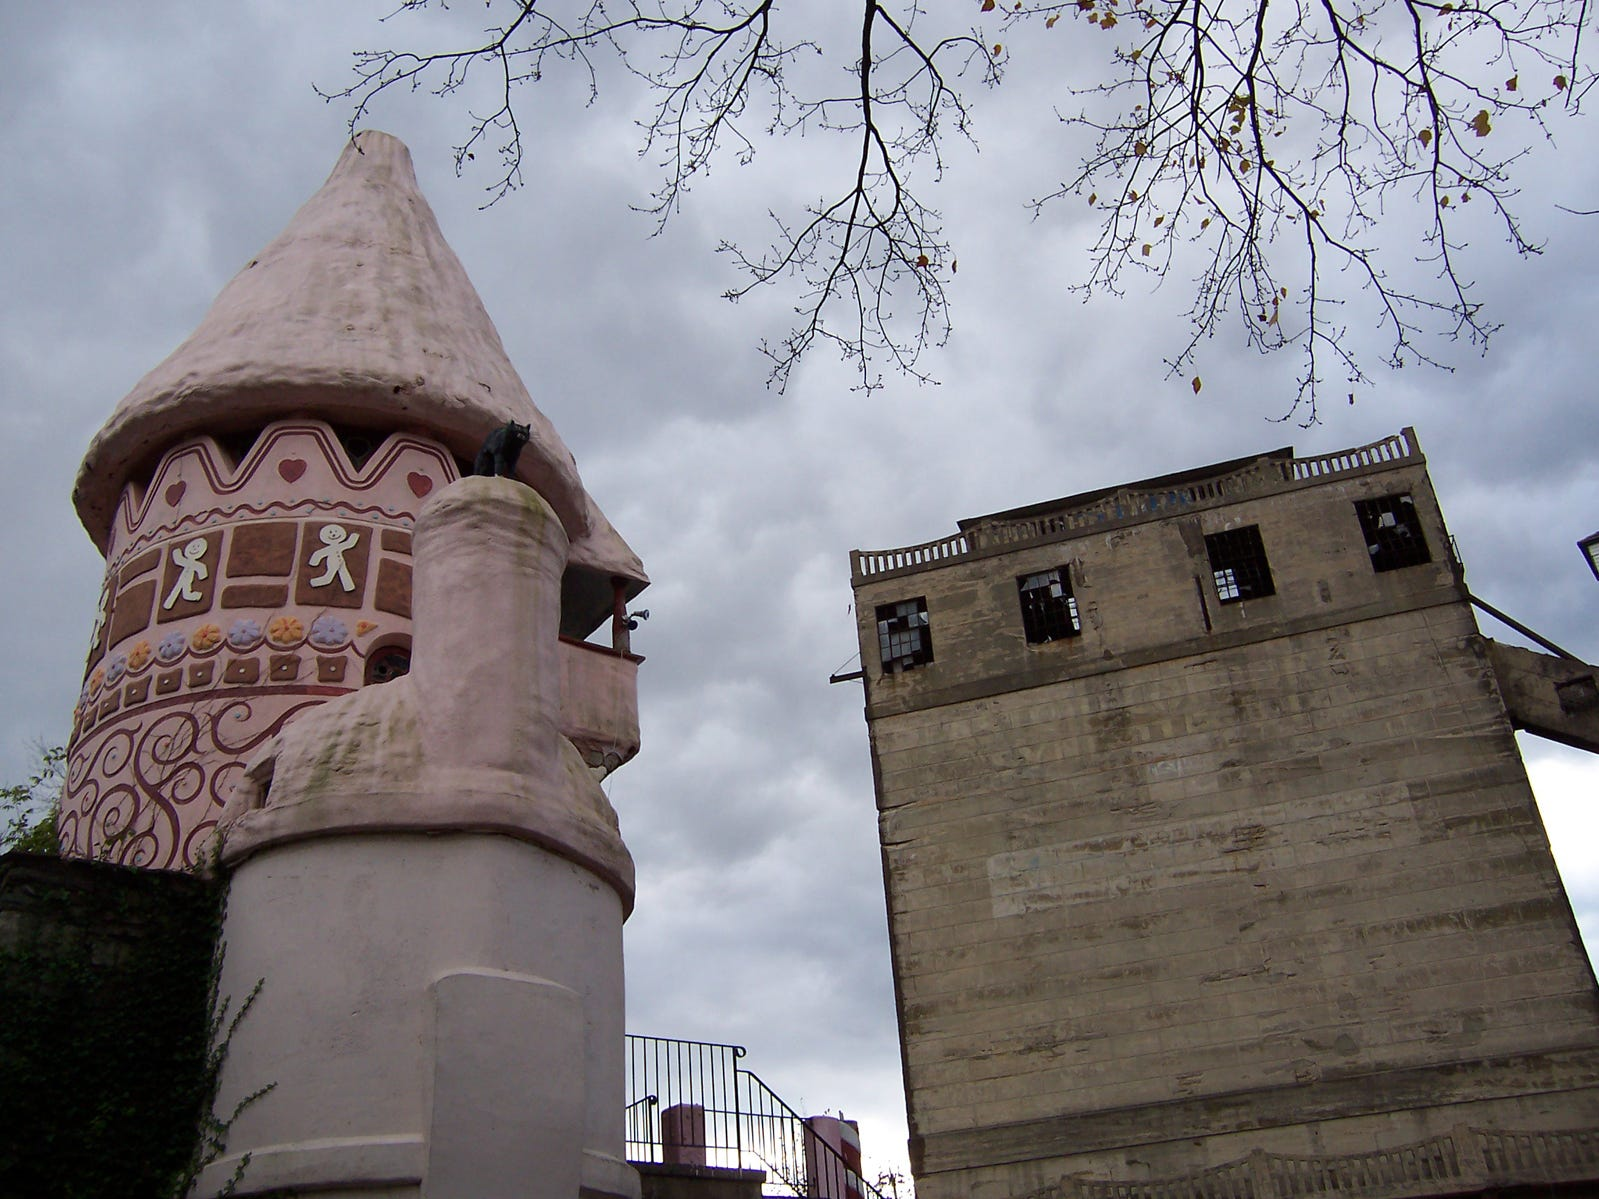 The Gingerbread Castle in Hamburg is flanked by an abandoned factory.